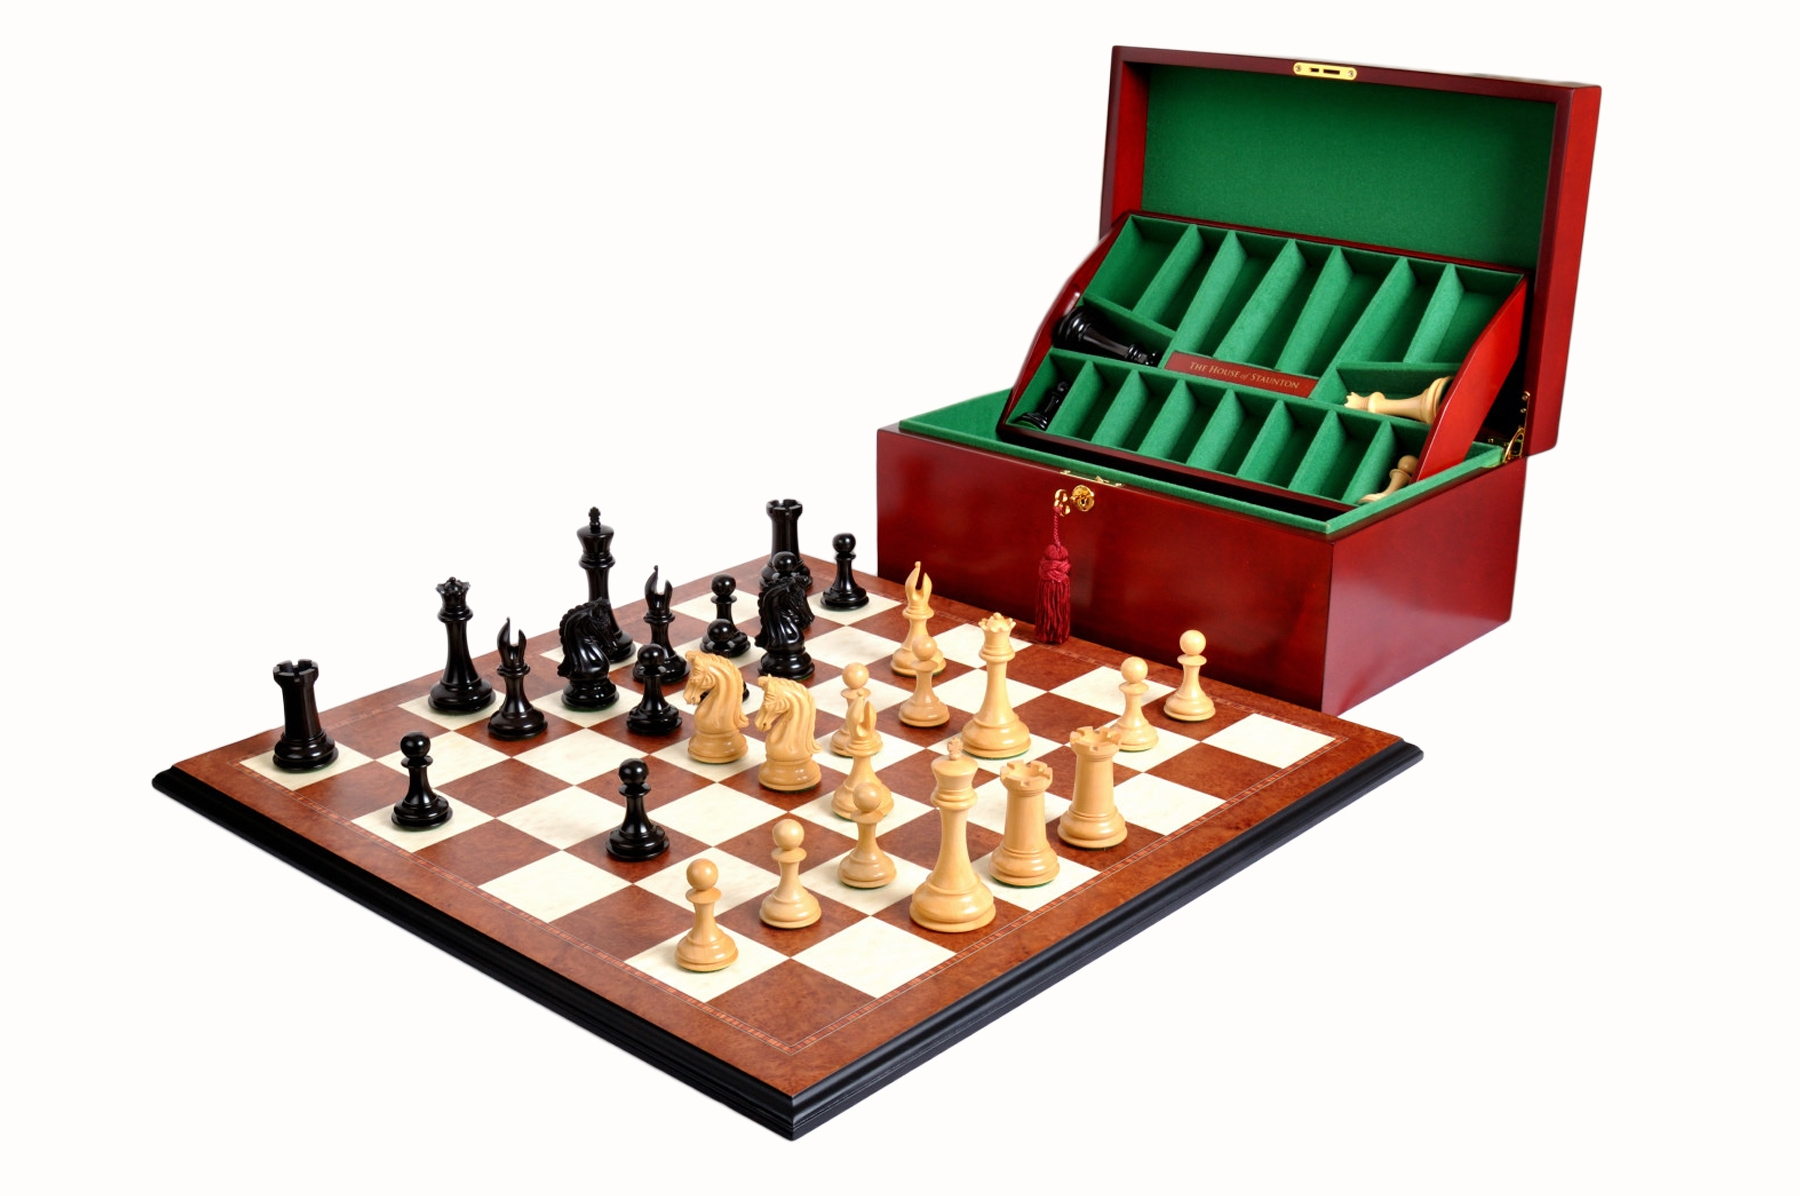 Collectors Chess Sets The Imperial Collector Chess Set Box And Board Combination